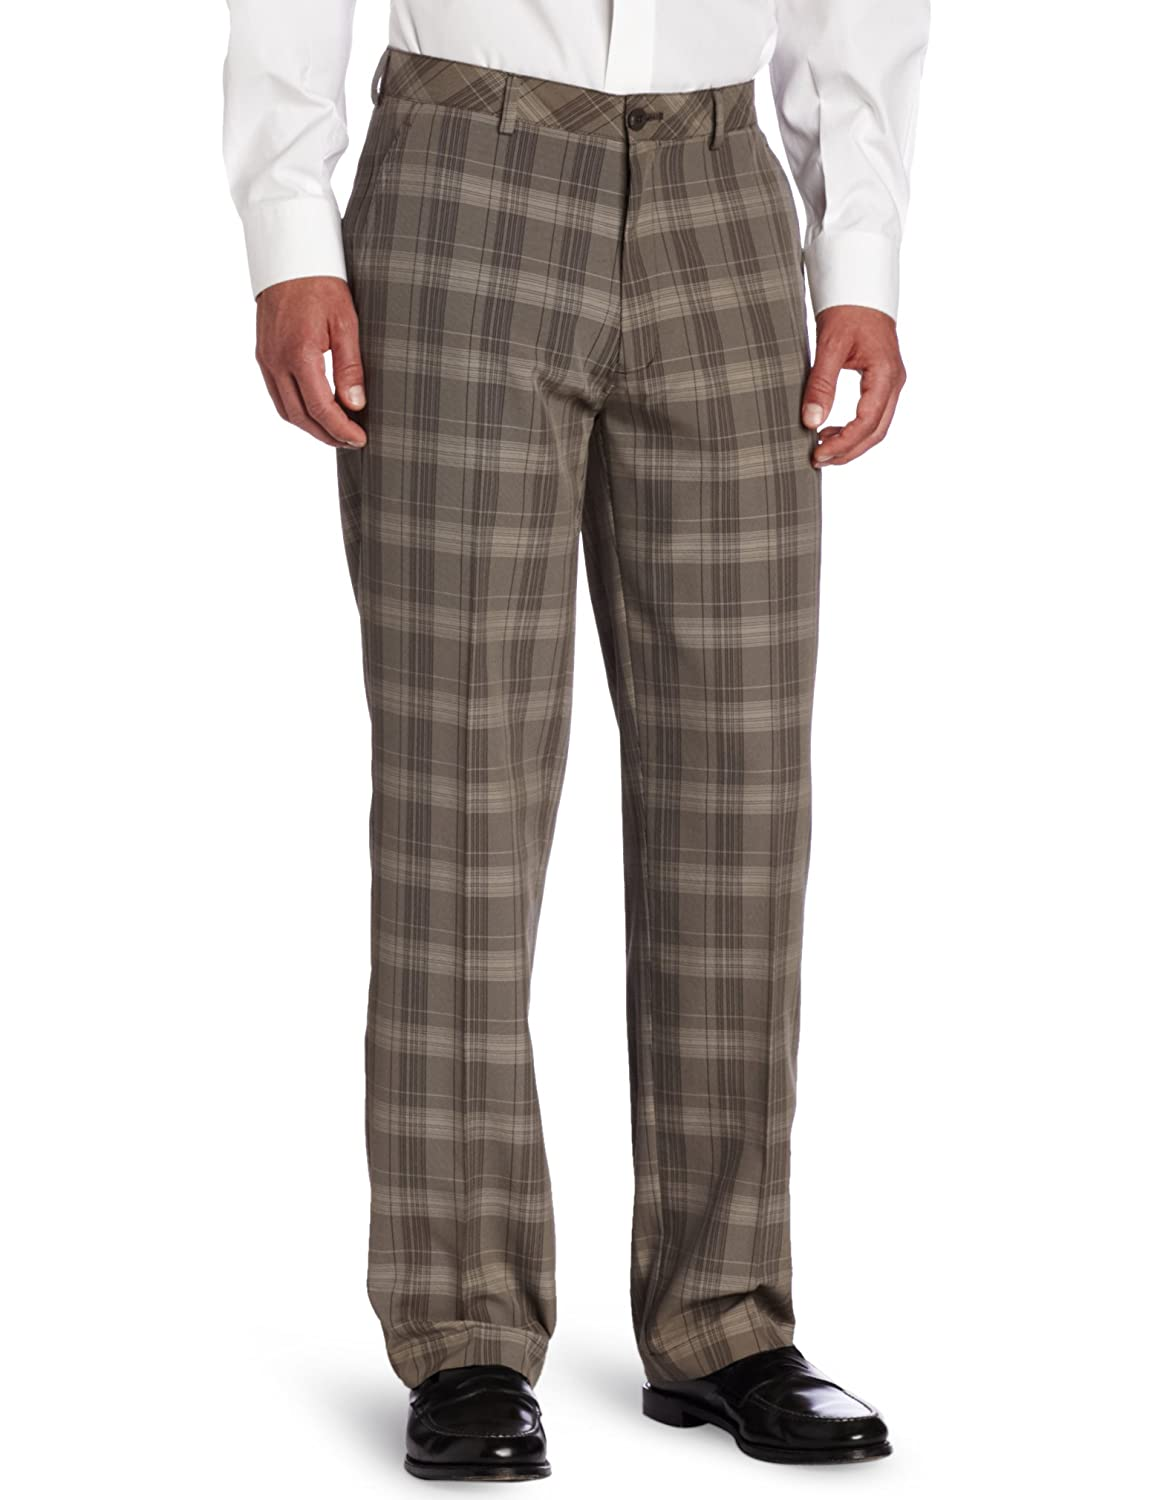 1930s Style Men's Pants Glen Plaid Straight Fit Flat Front Pant $49.19 AT vintagedancer.com